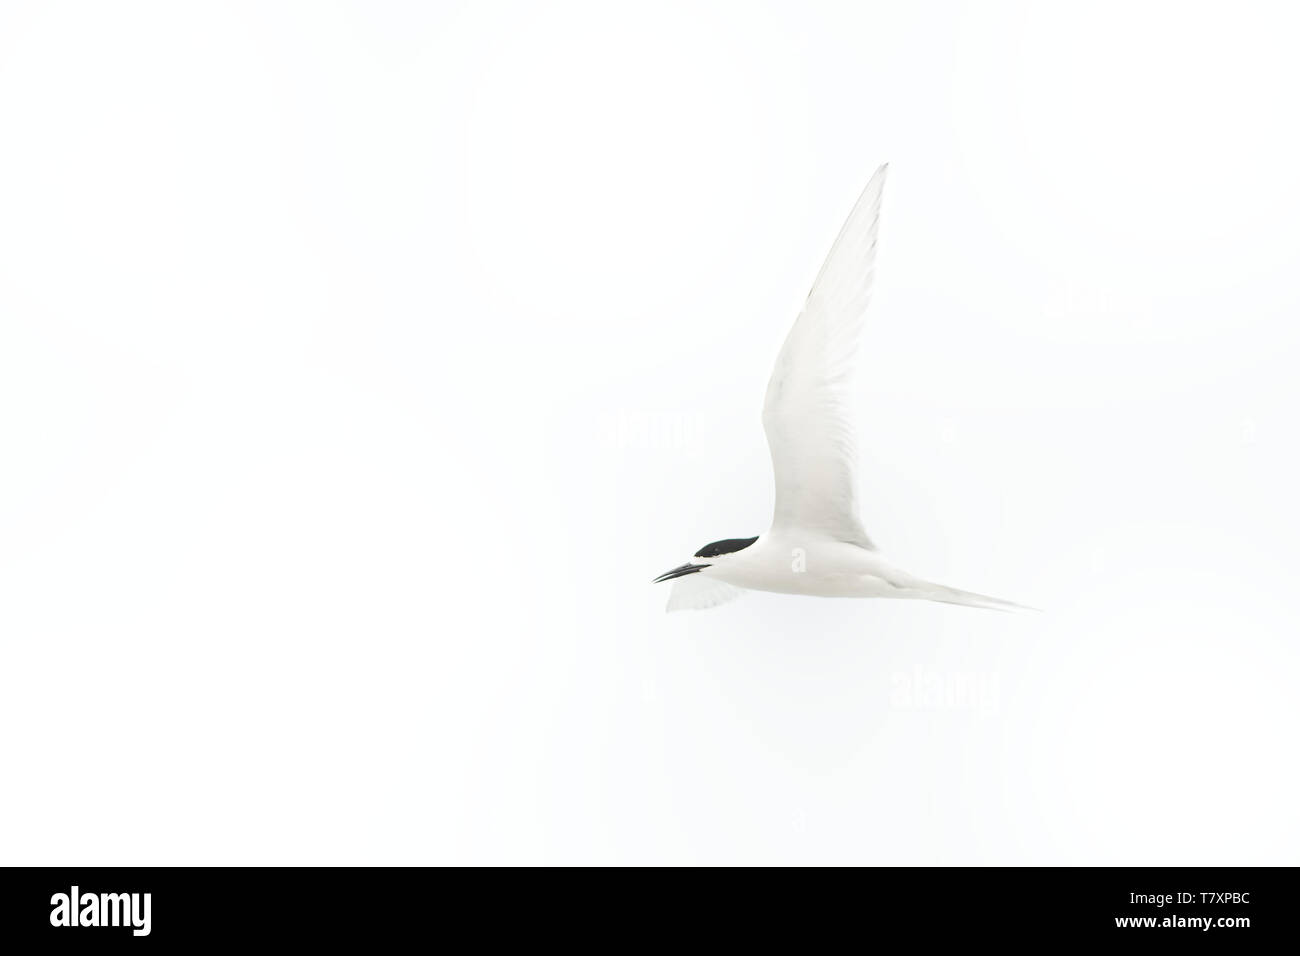 White-fronted Tern - Sterna striata  - tara in Maori language living in New Zealand, flying, hunting, mating - Stock Image